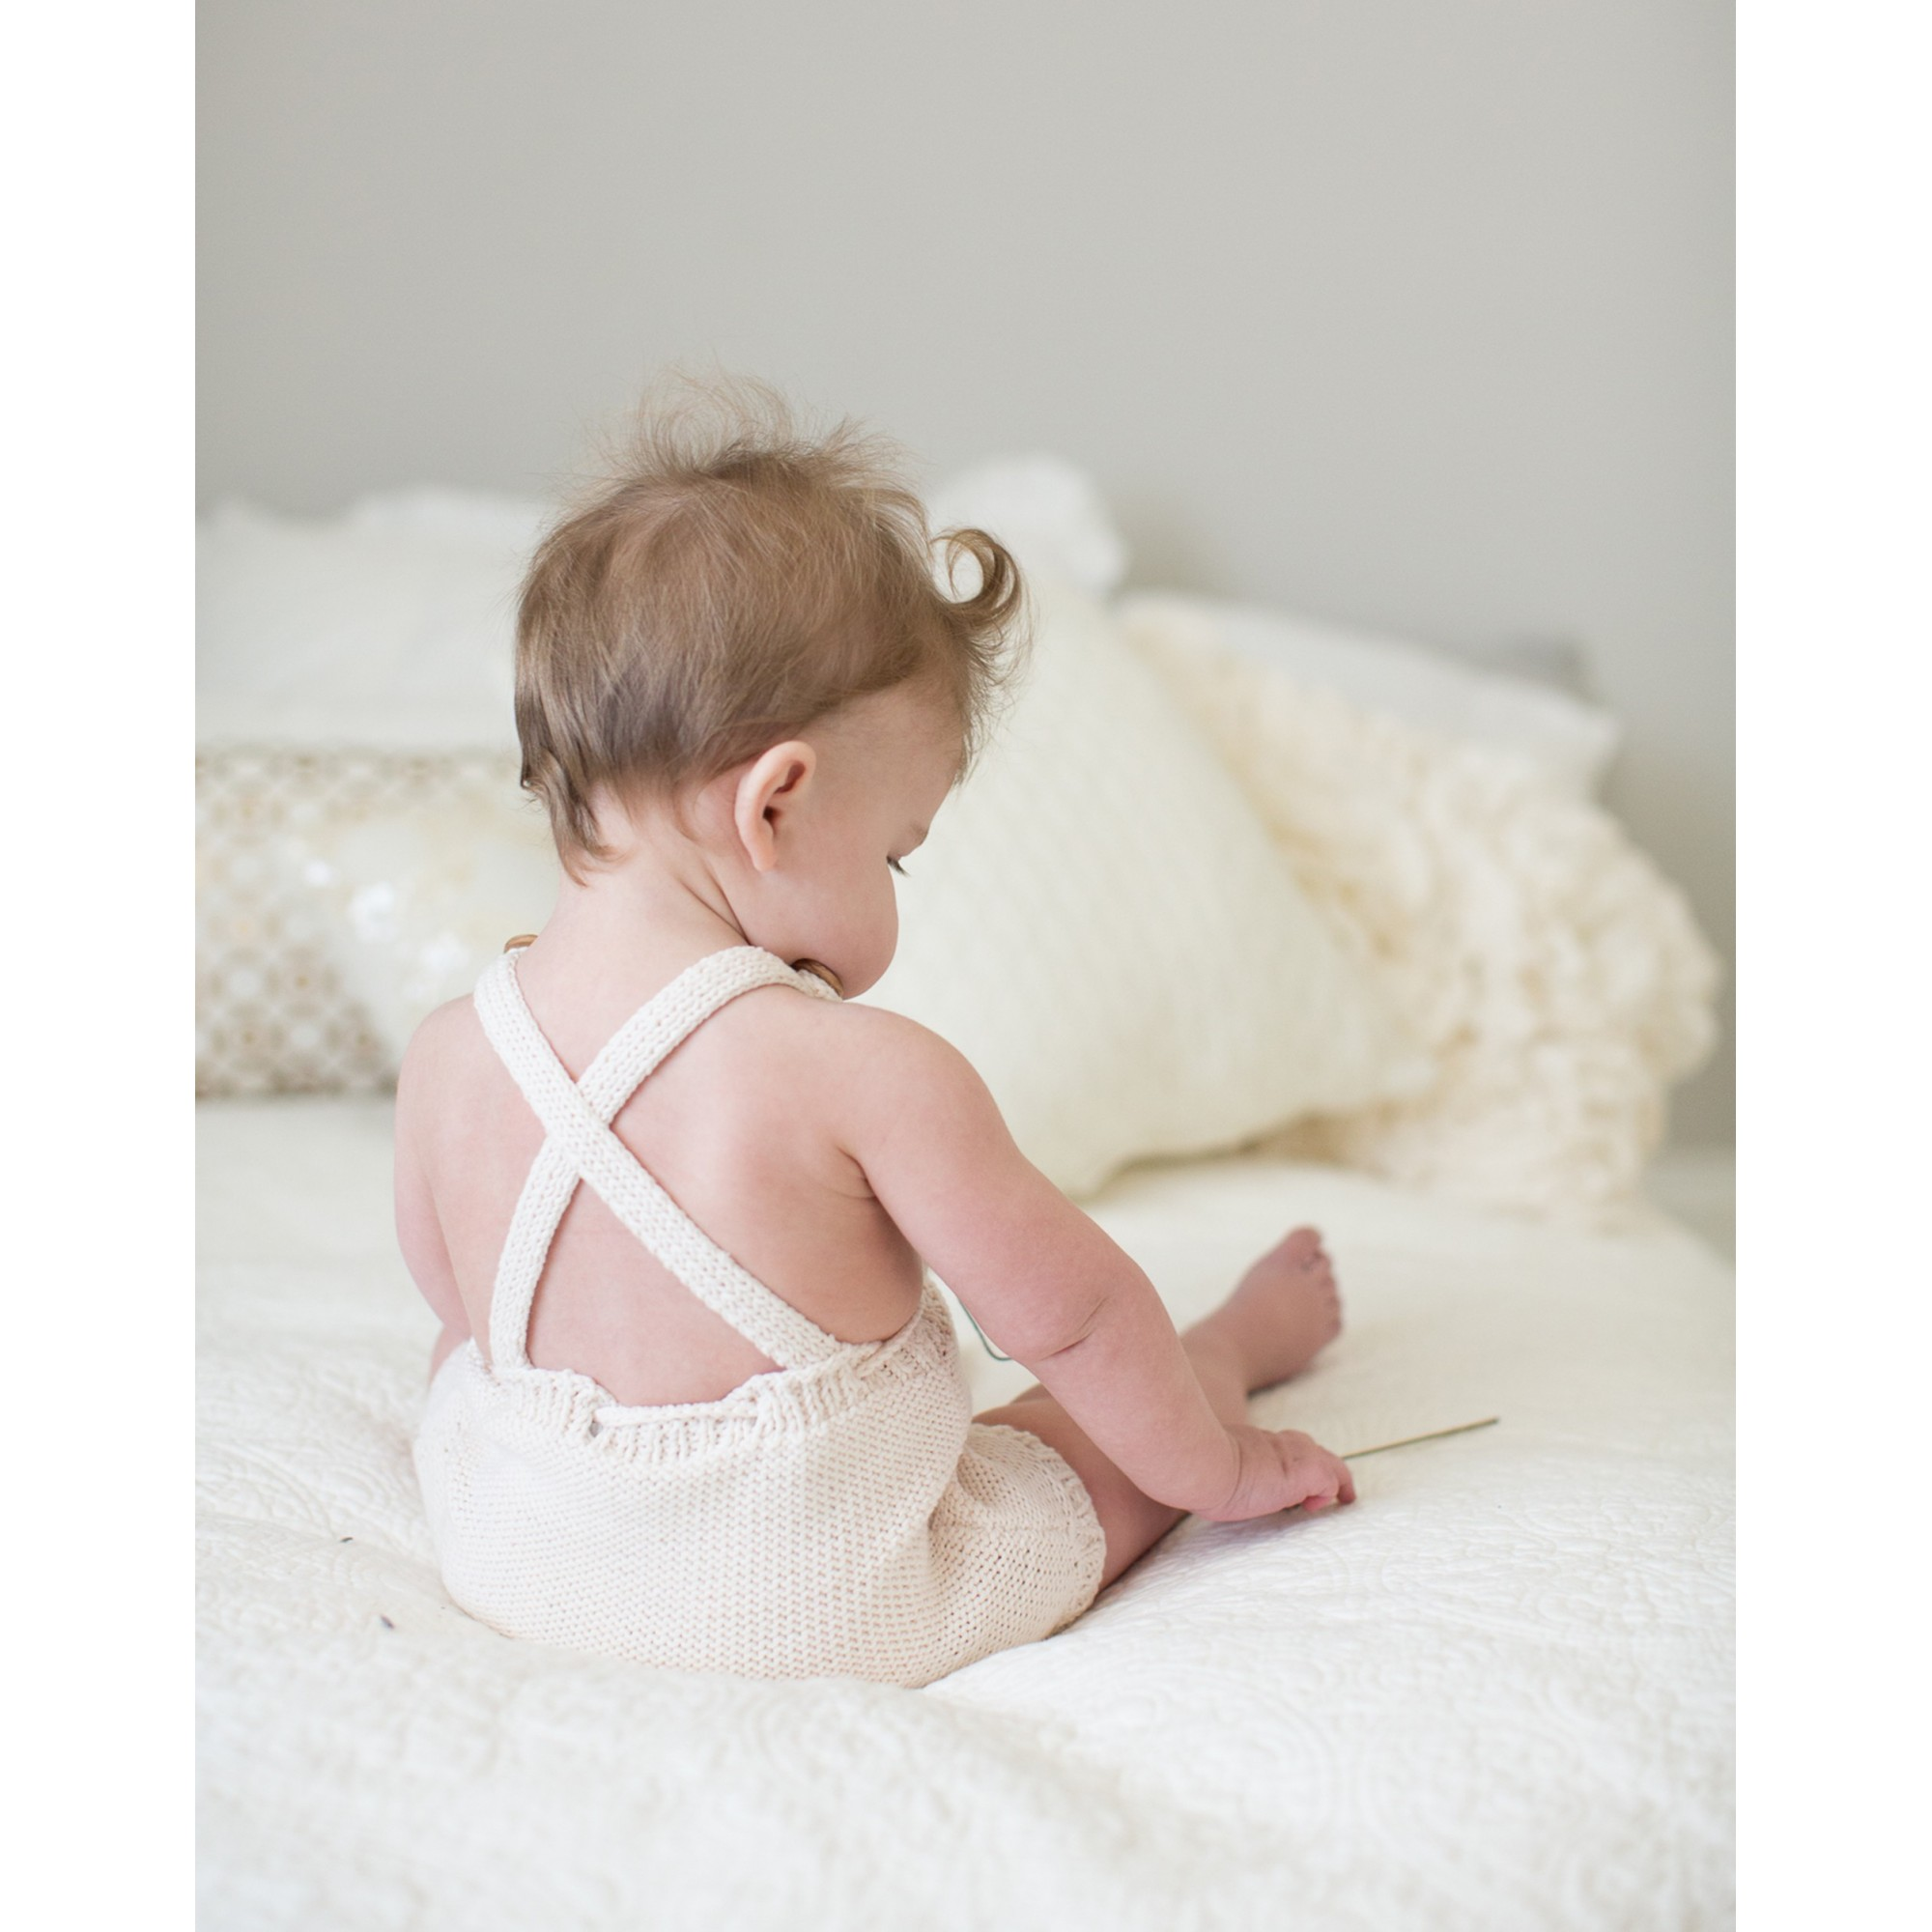 Félicie rompers for baby made from cotton - natural white color - worn (seen from the back)